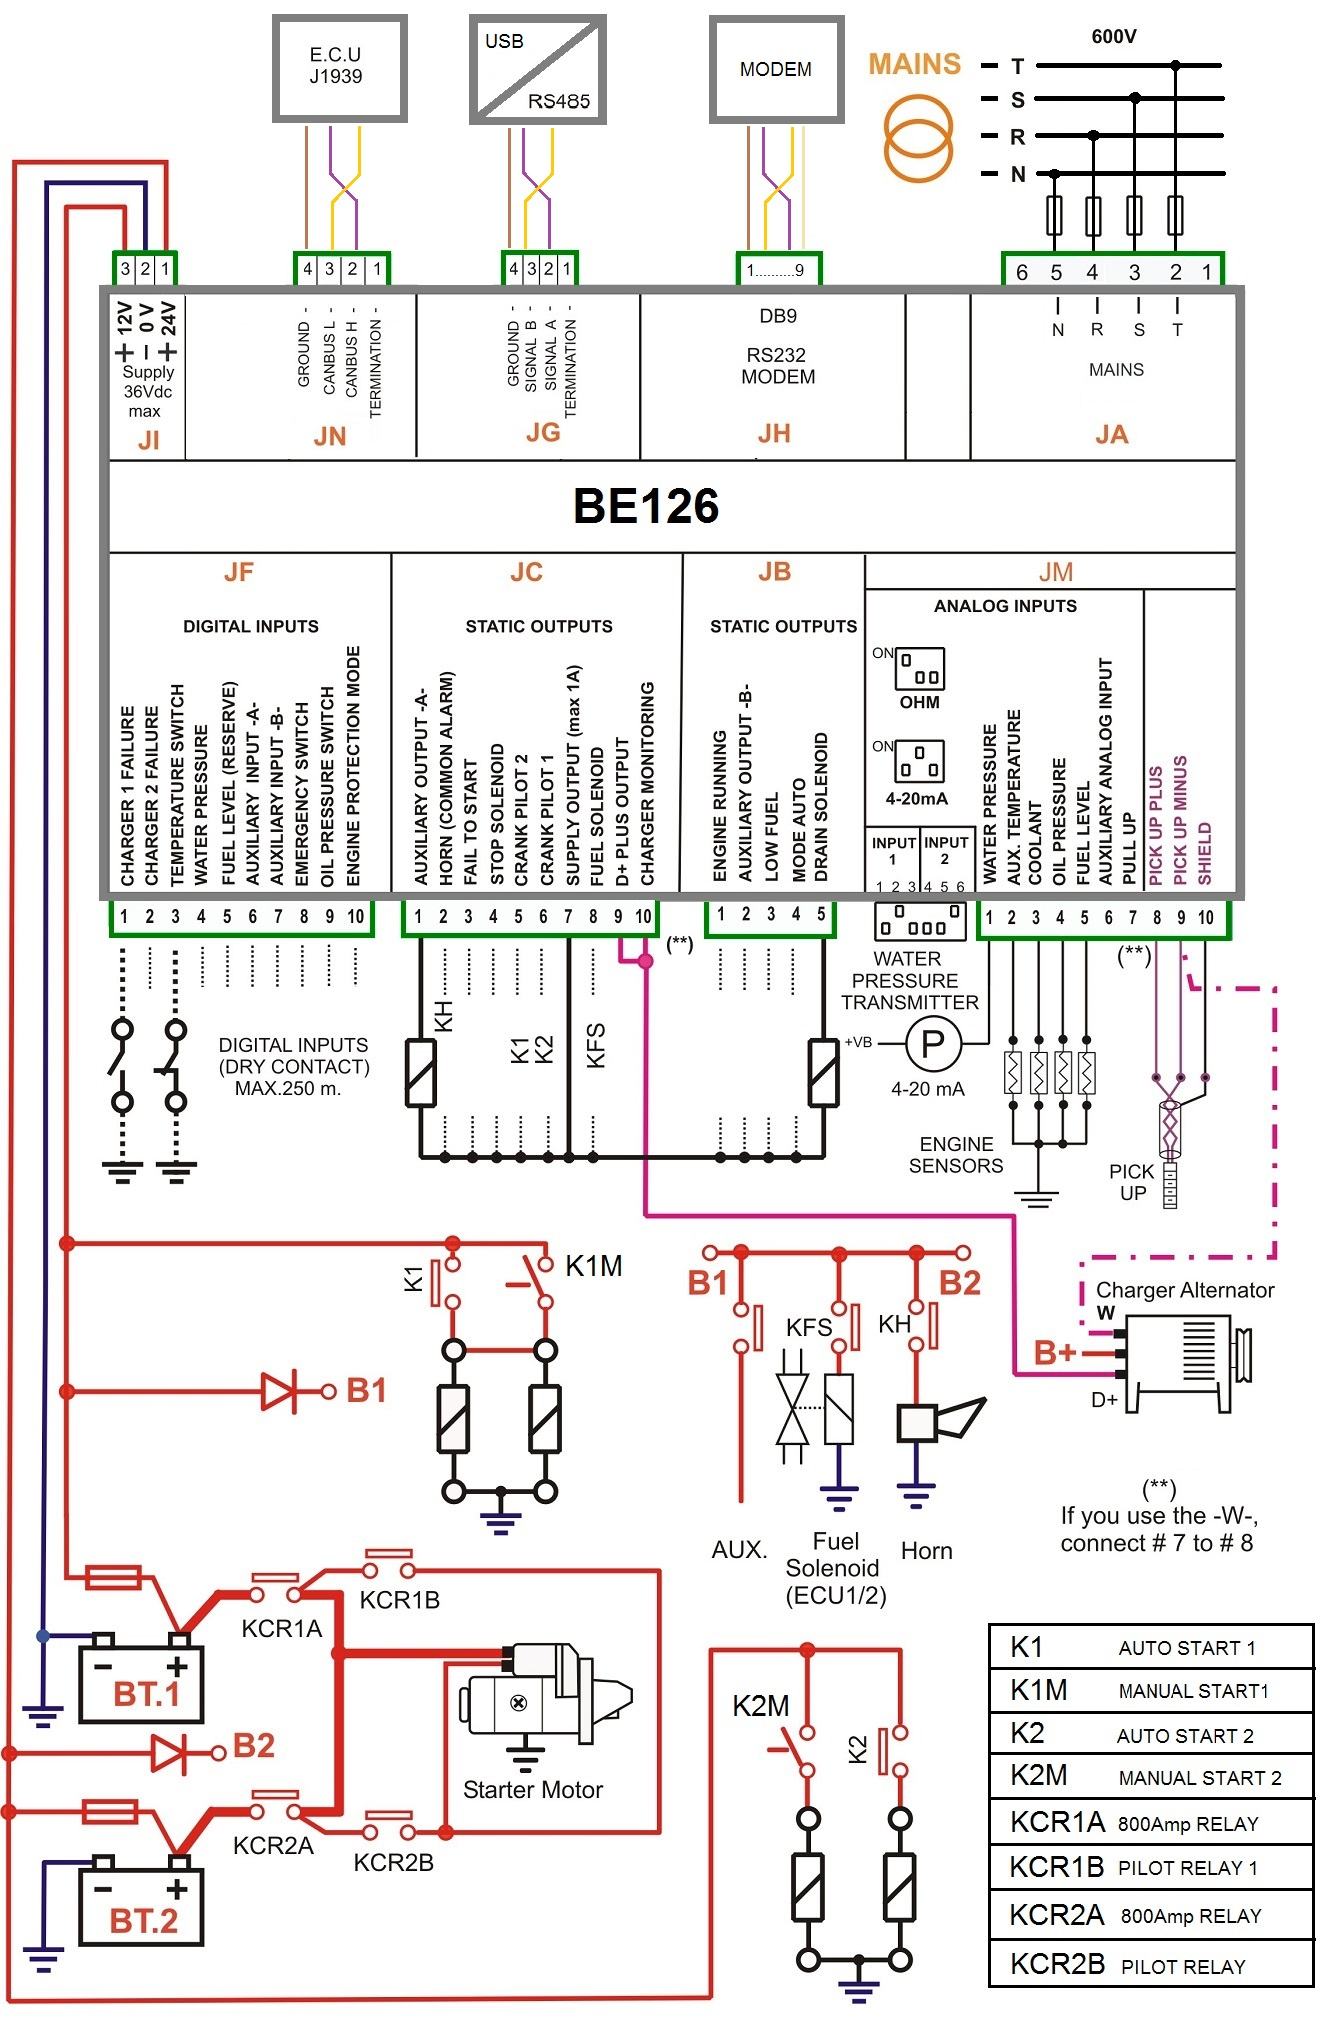 fire pump controller wiring diagram genset controller rh bernini design com